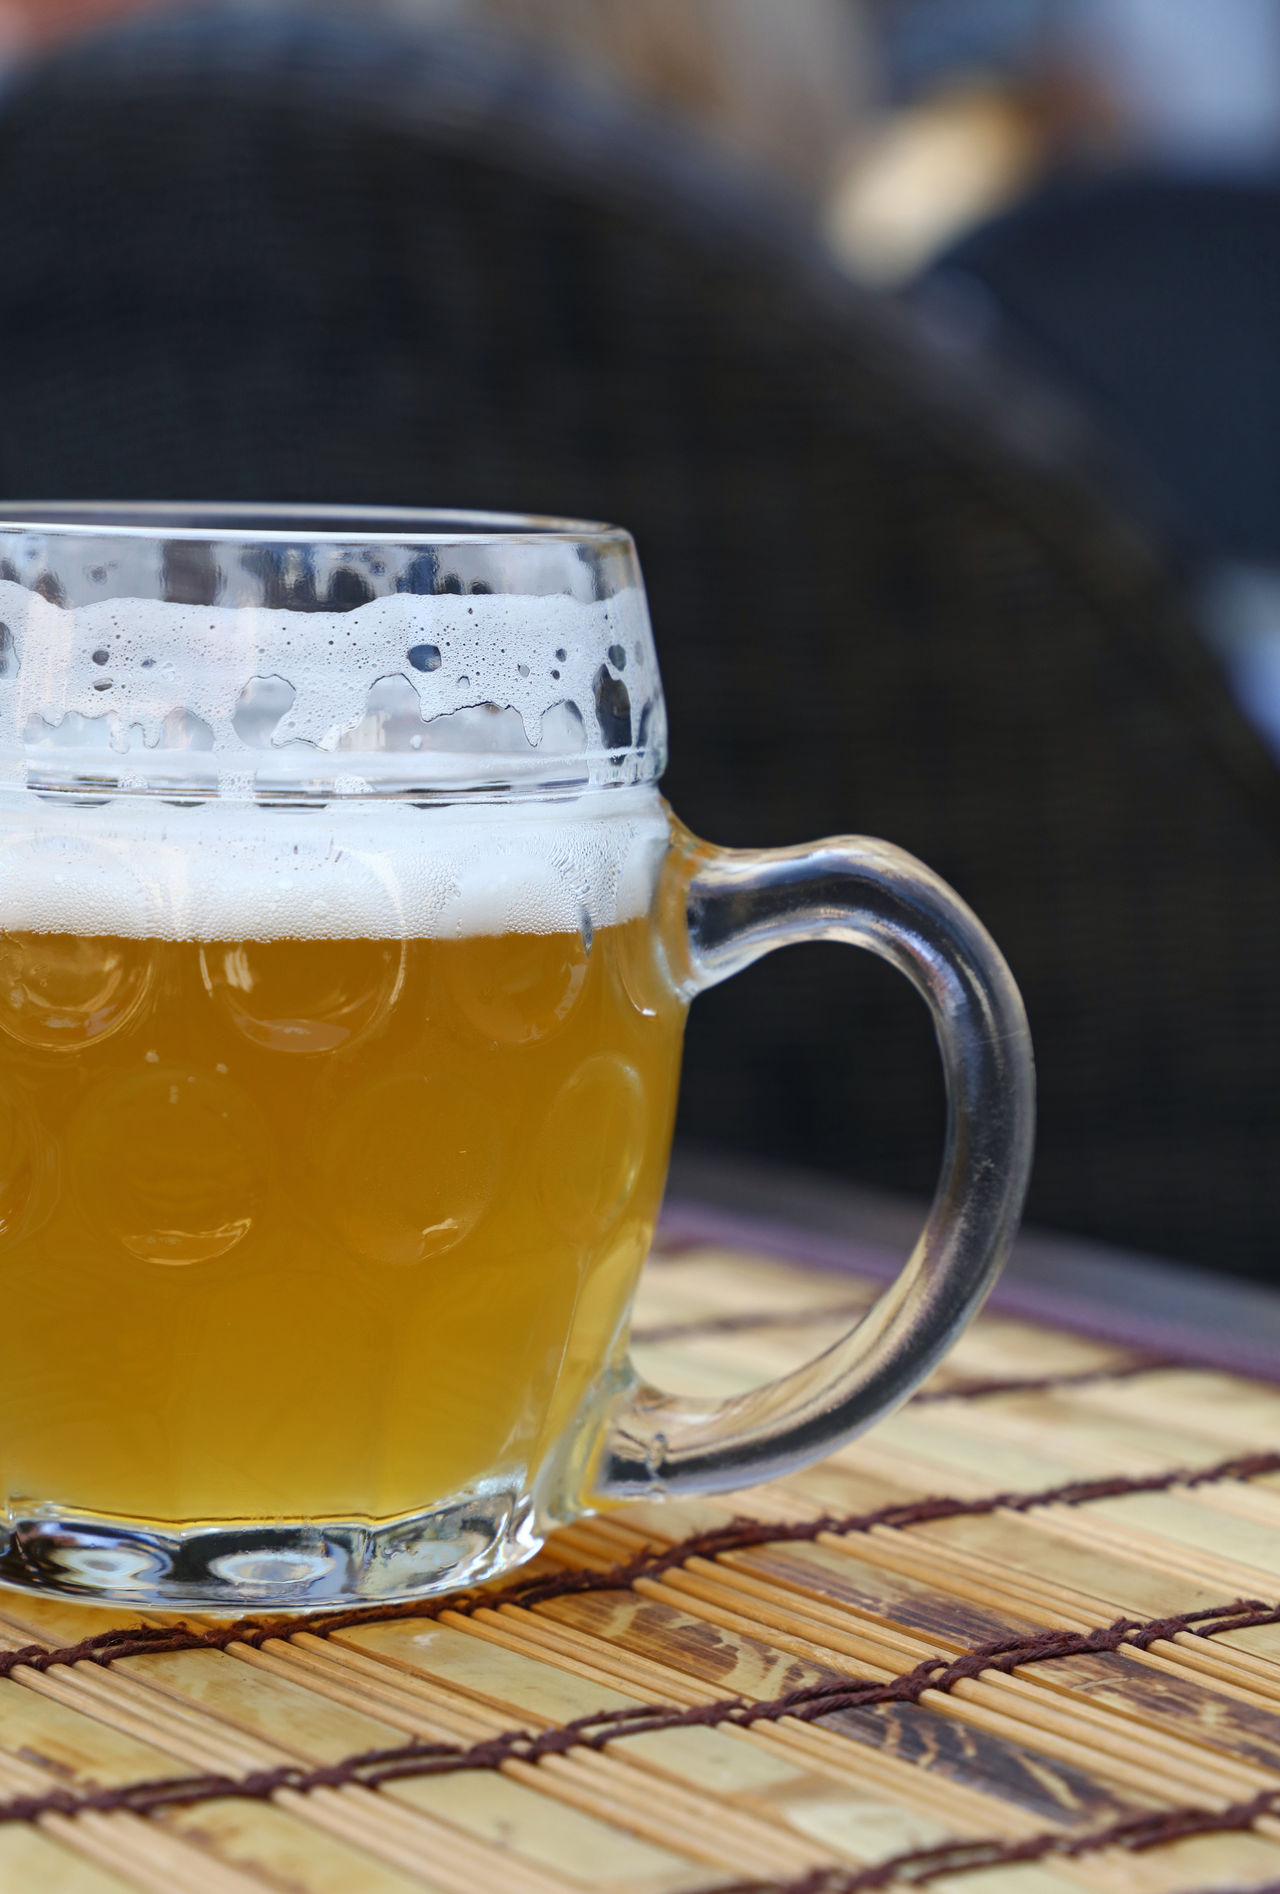 Beautiful stock photos of oktoberfest,  Alcohol,  Beer - Alcohol,  Beer Stein,  Beverage